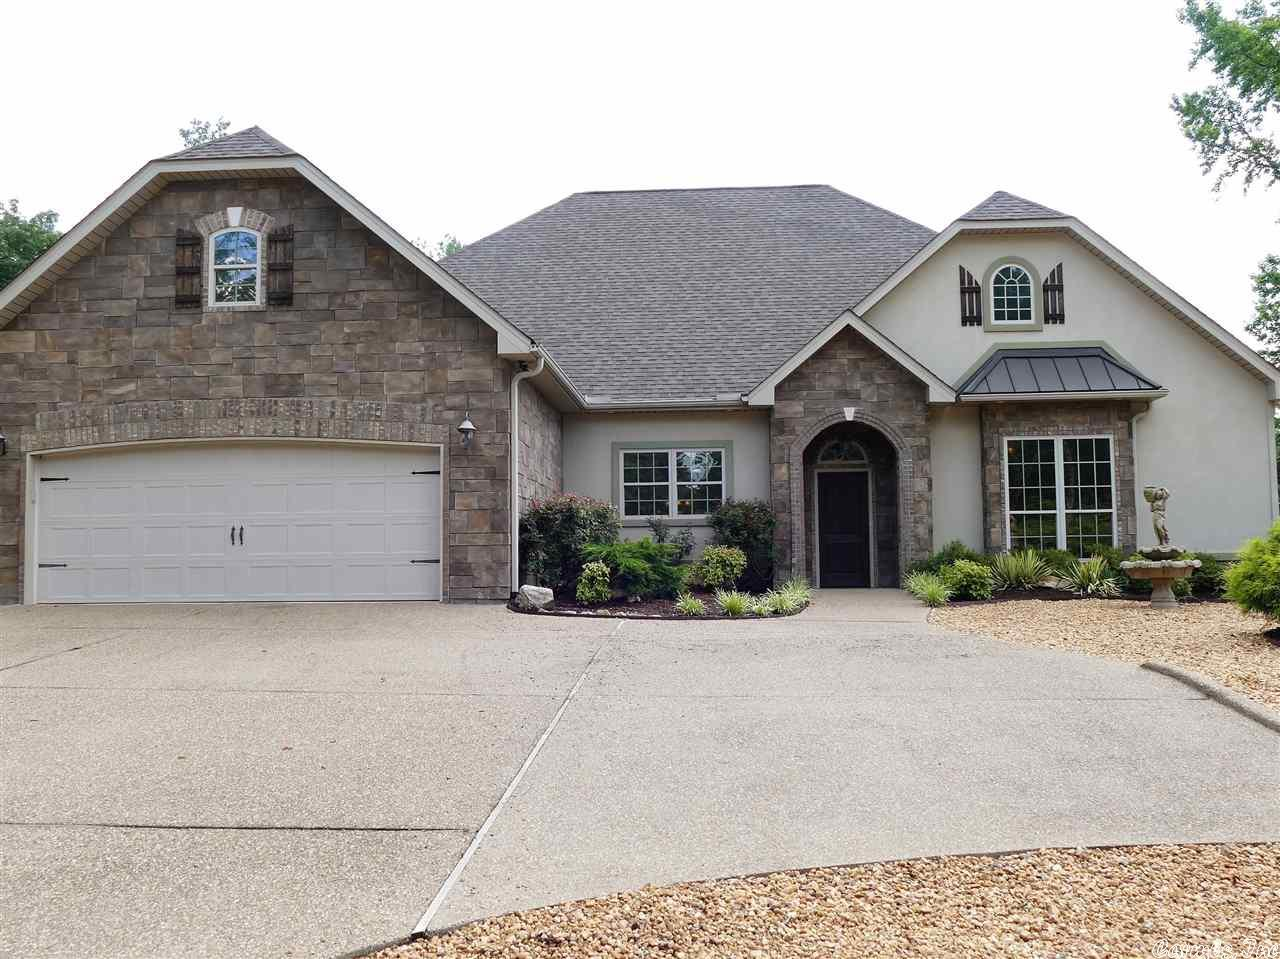 Golf Course Homes For Sale In Hot Springs Village Arkansas